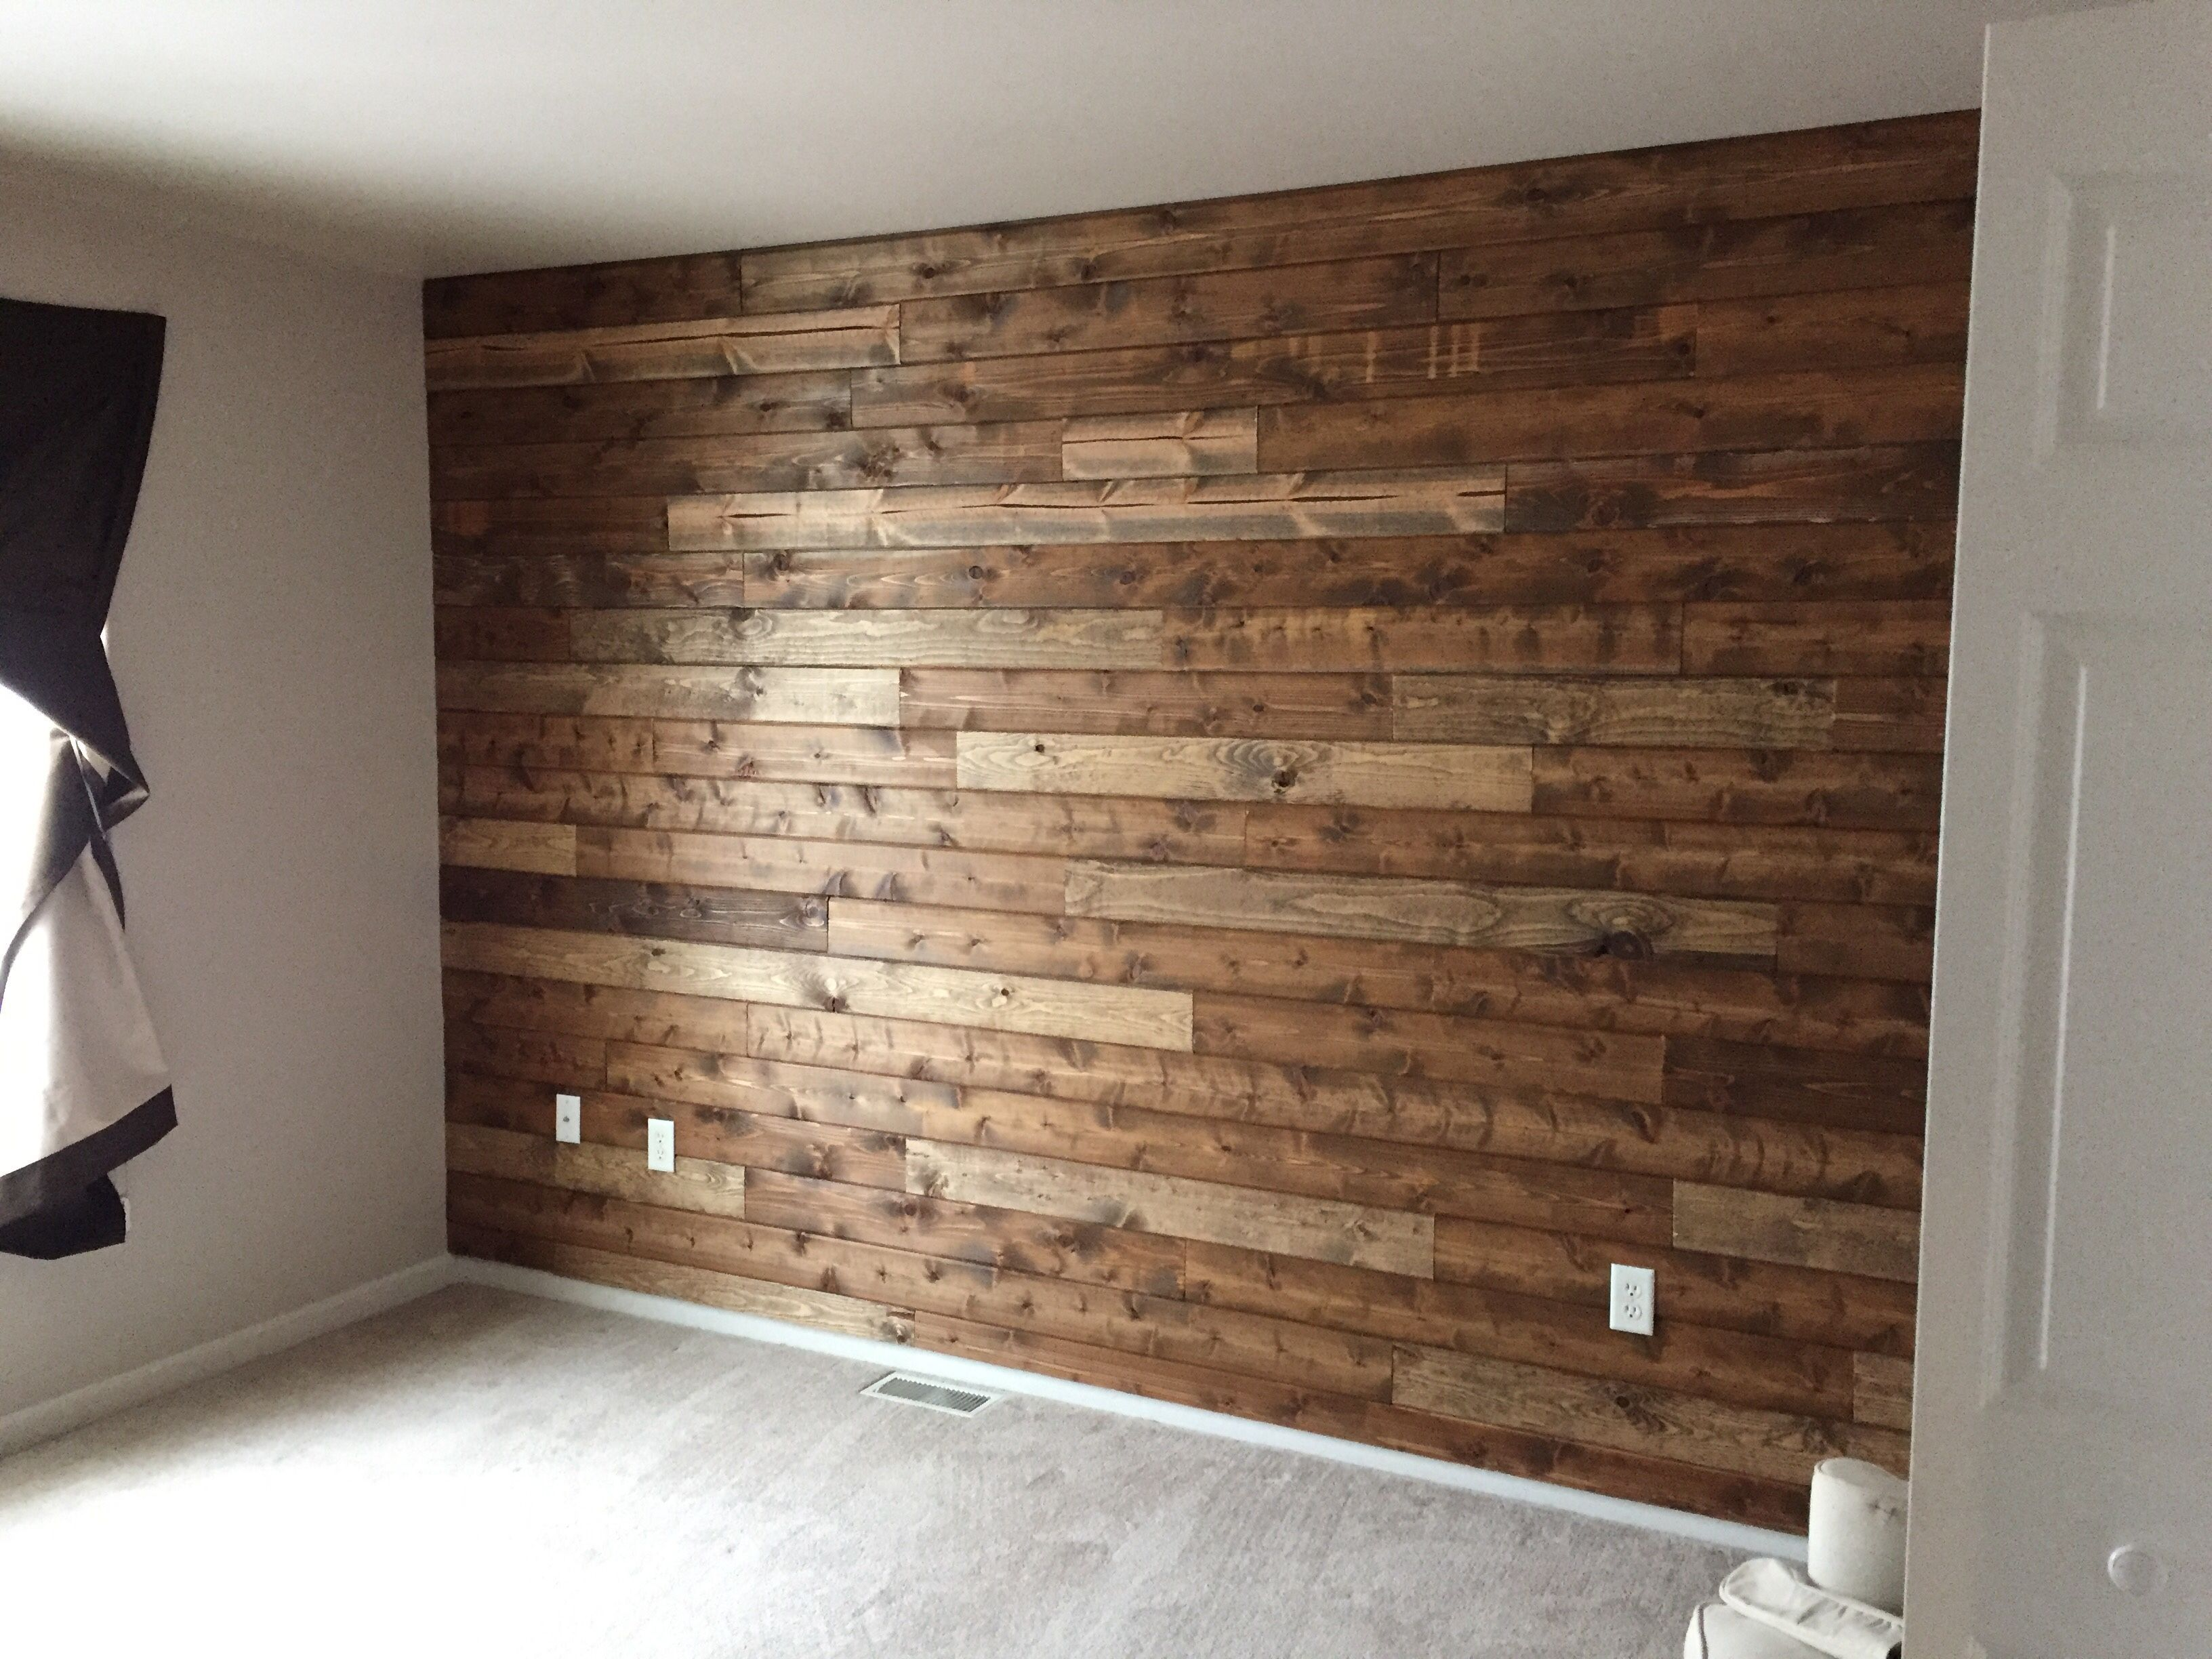 Inspiring Accent Wall Ideas To Change An Area Bedroom Living Room Brown Rustic Dining Wood Wooden Accent Wall Accent Walls In Living Room Wood Accent Wall